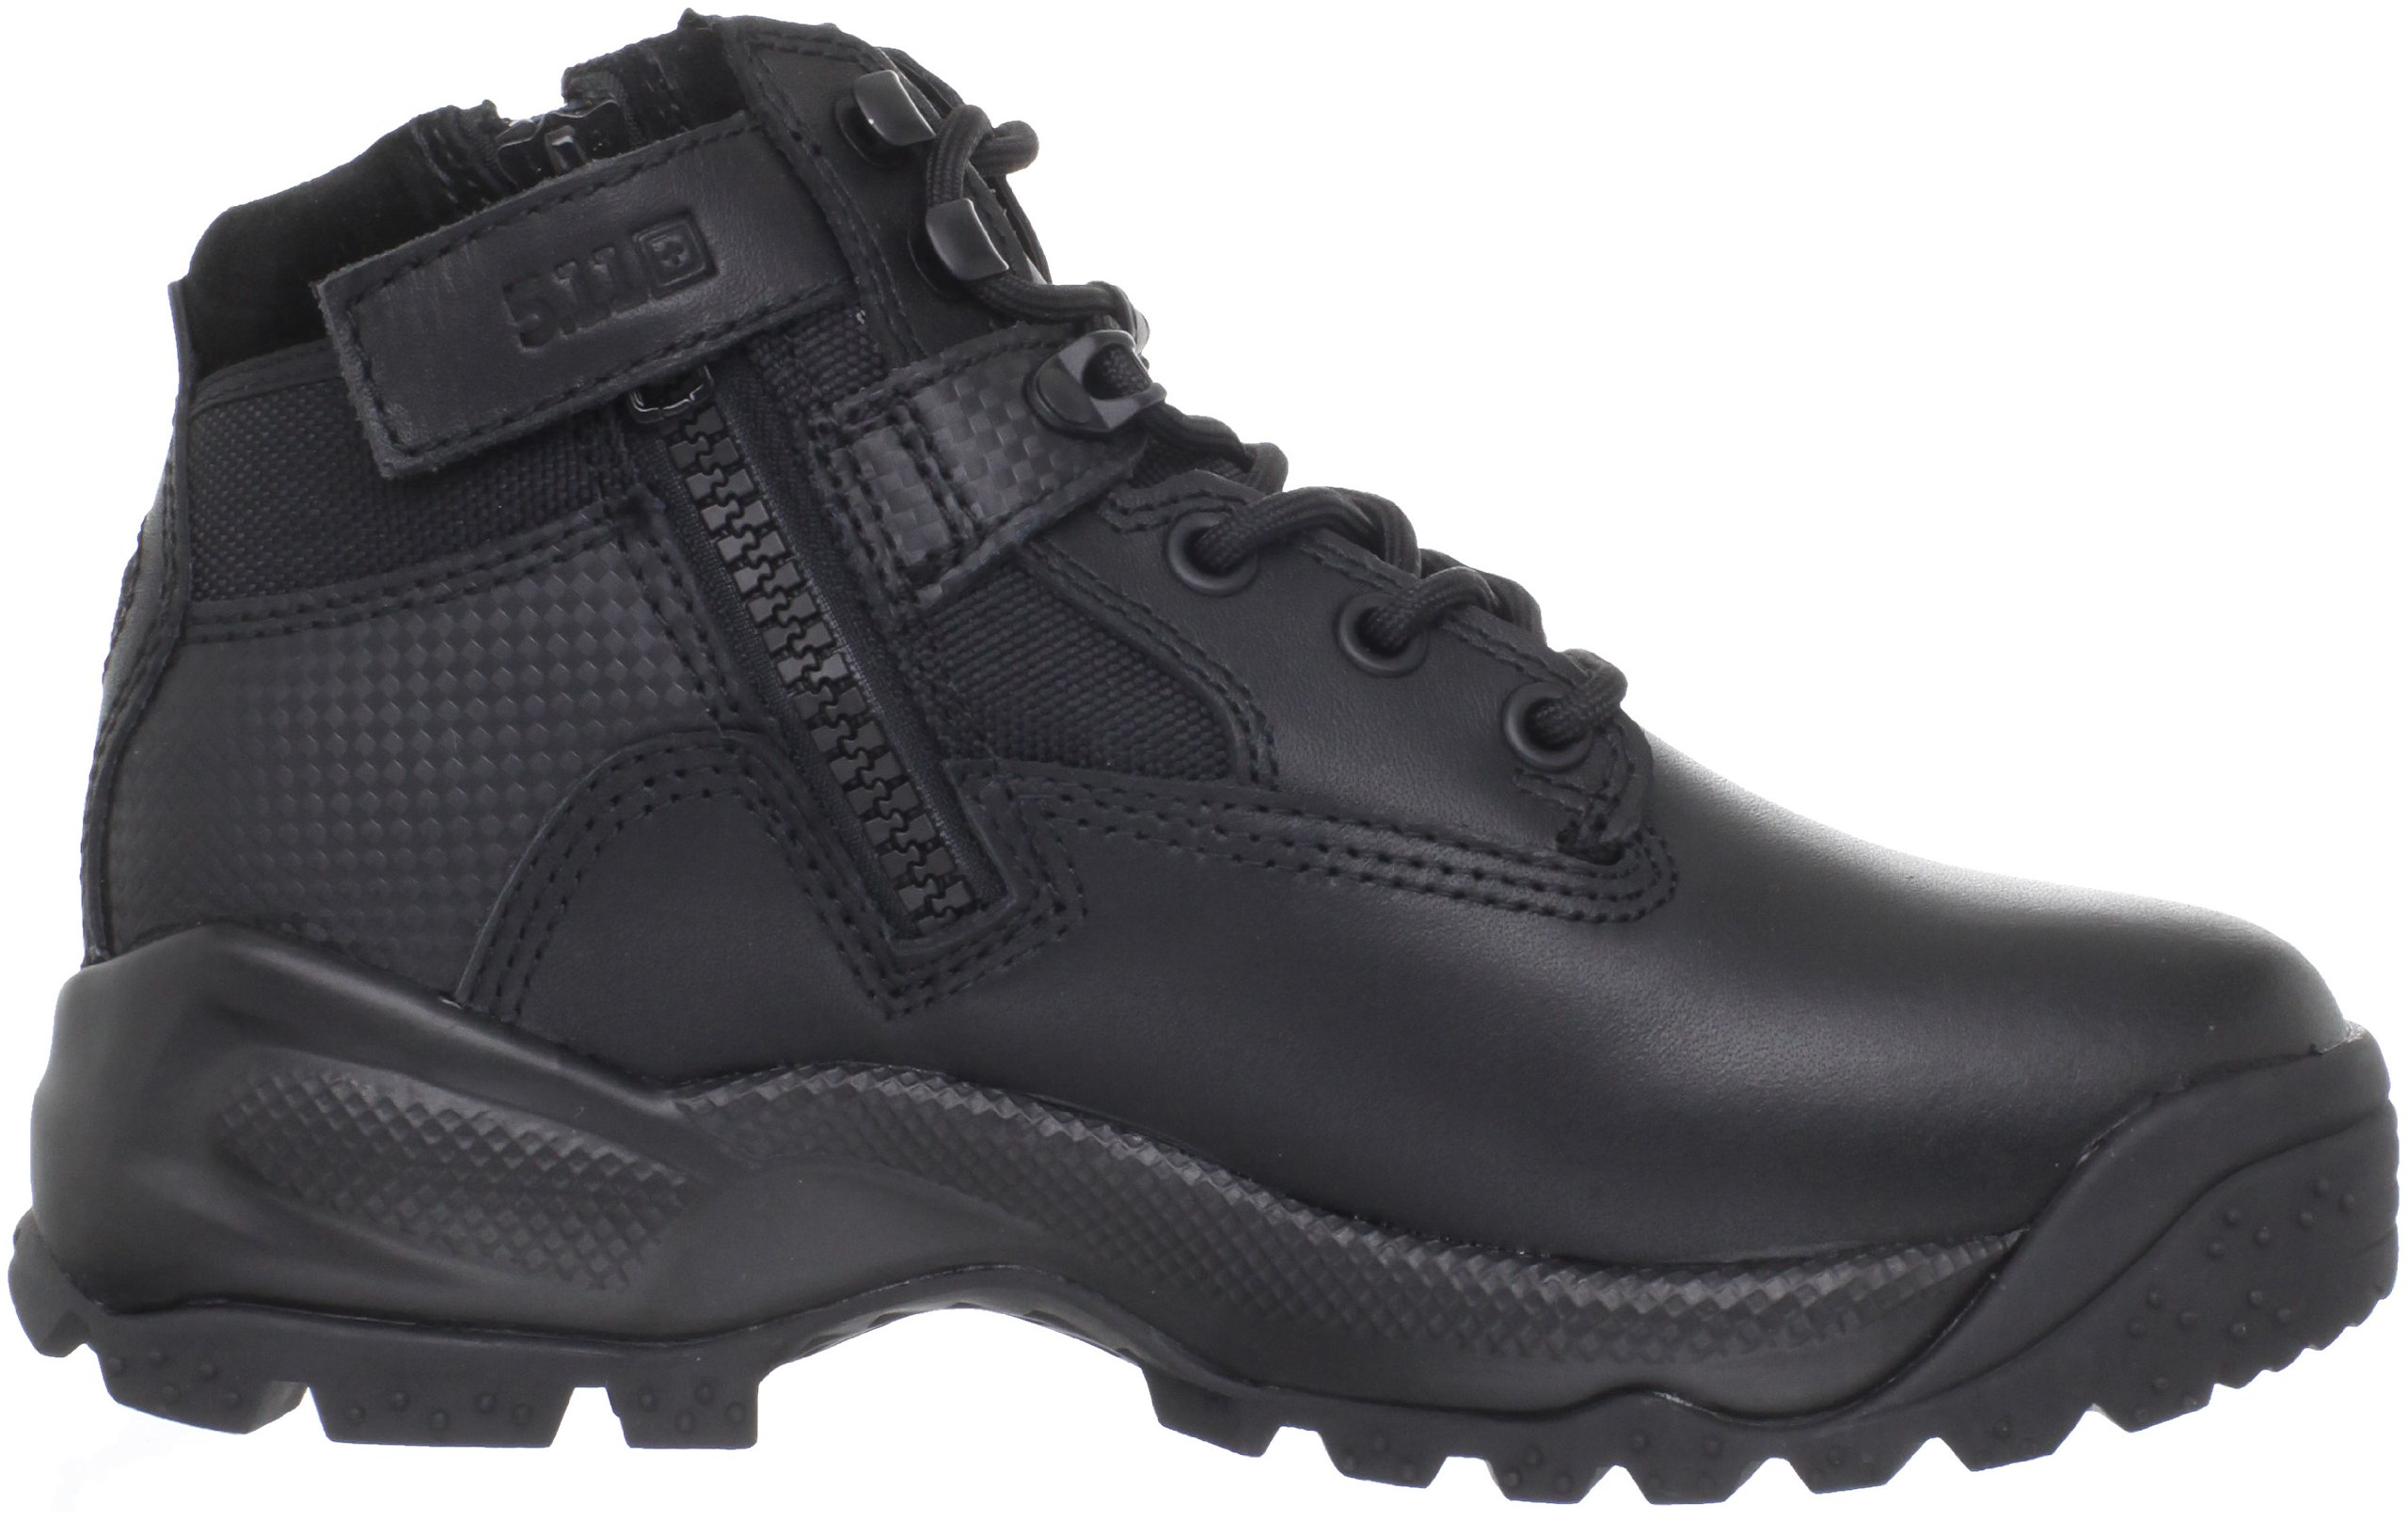 5.11 Women's A.T.A.C. 6'' Side Zip Tactical Boots, Style 12025, Black, 6 R by 5.11 (Image #6)